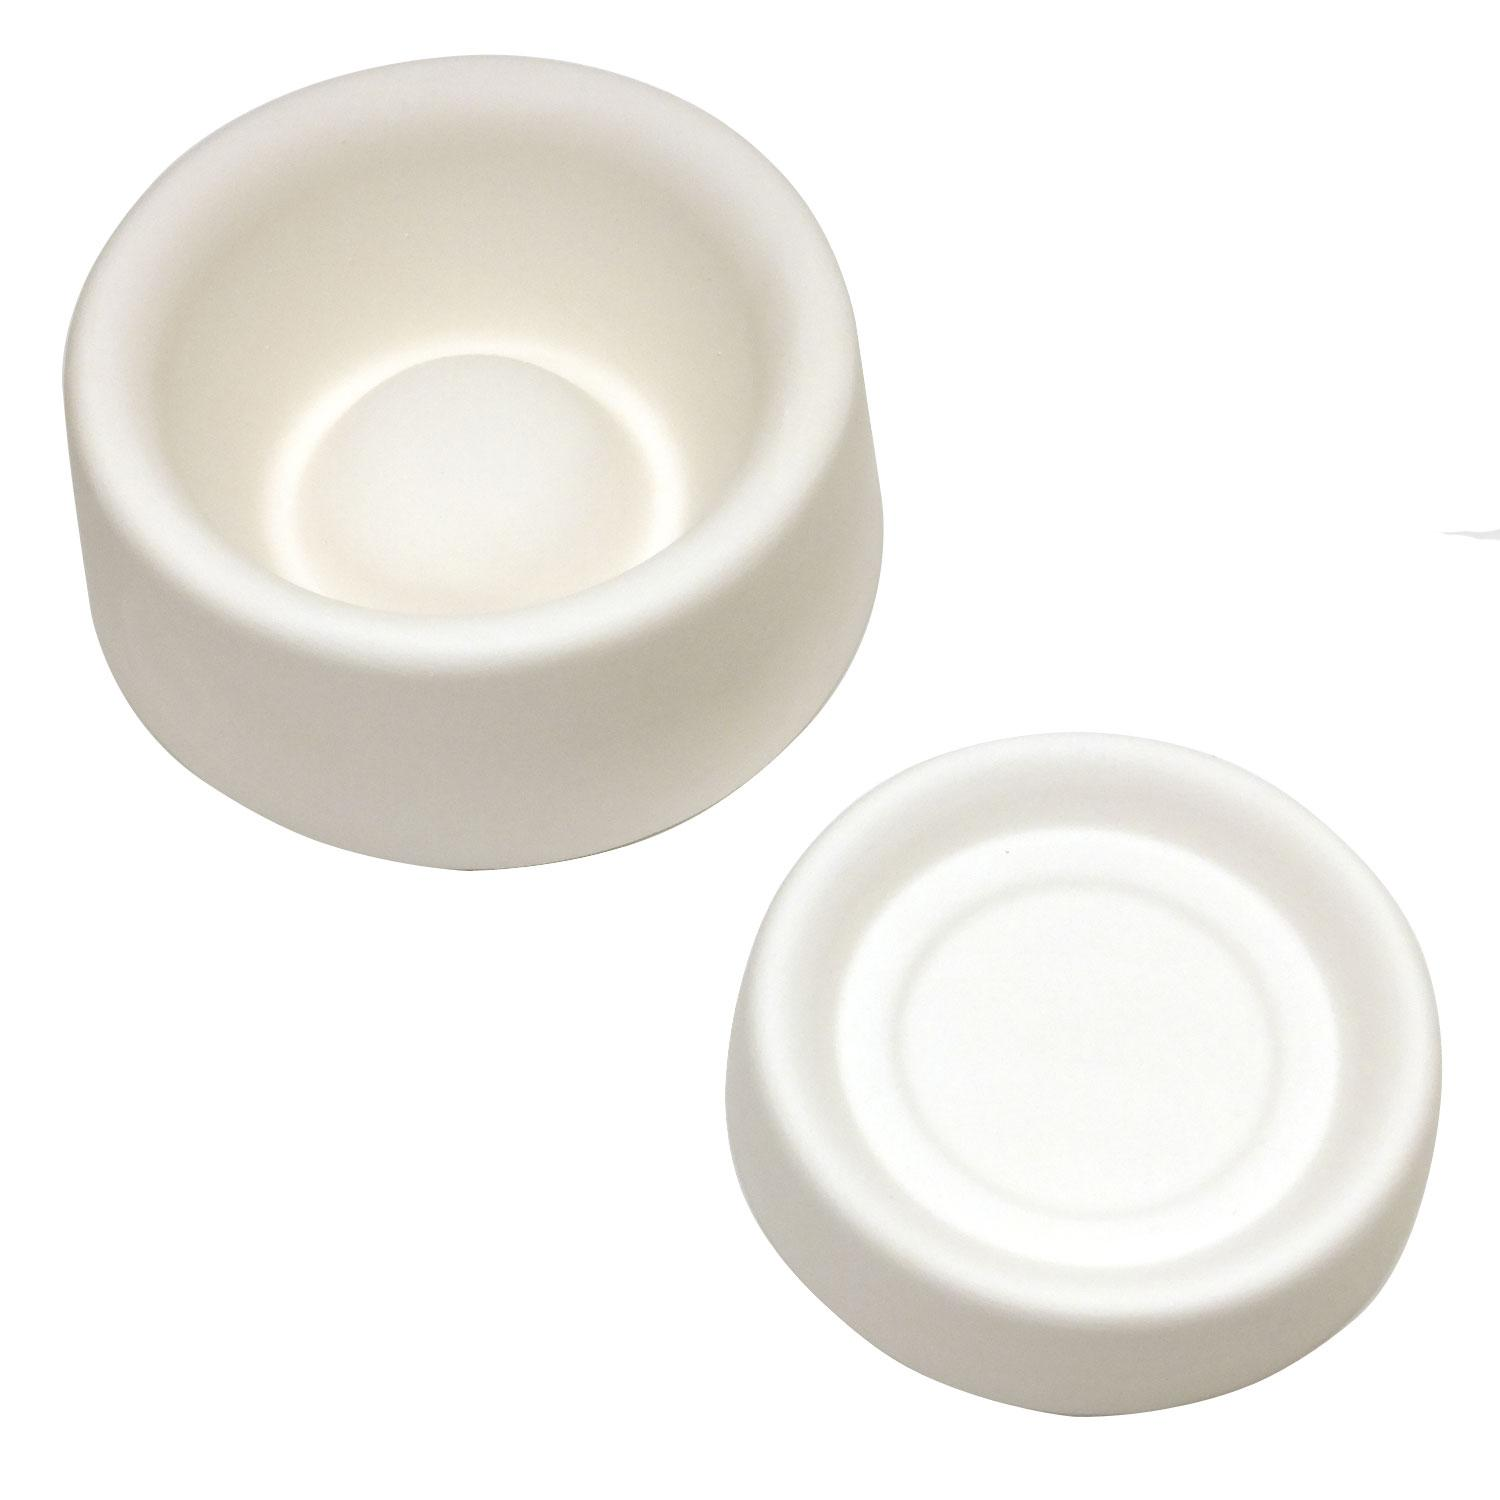 3-1/2 Round Box With Lid Casting Mold